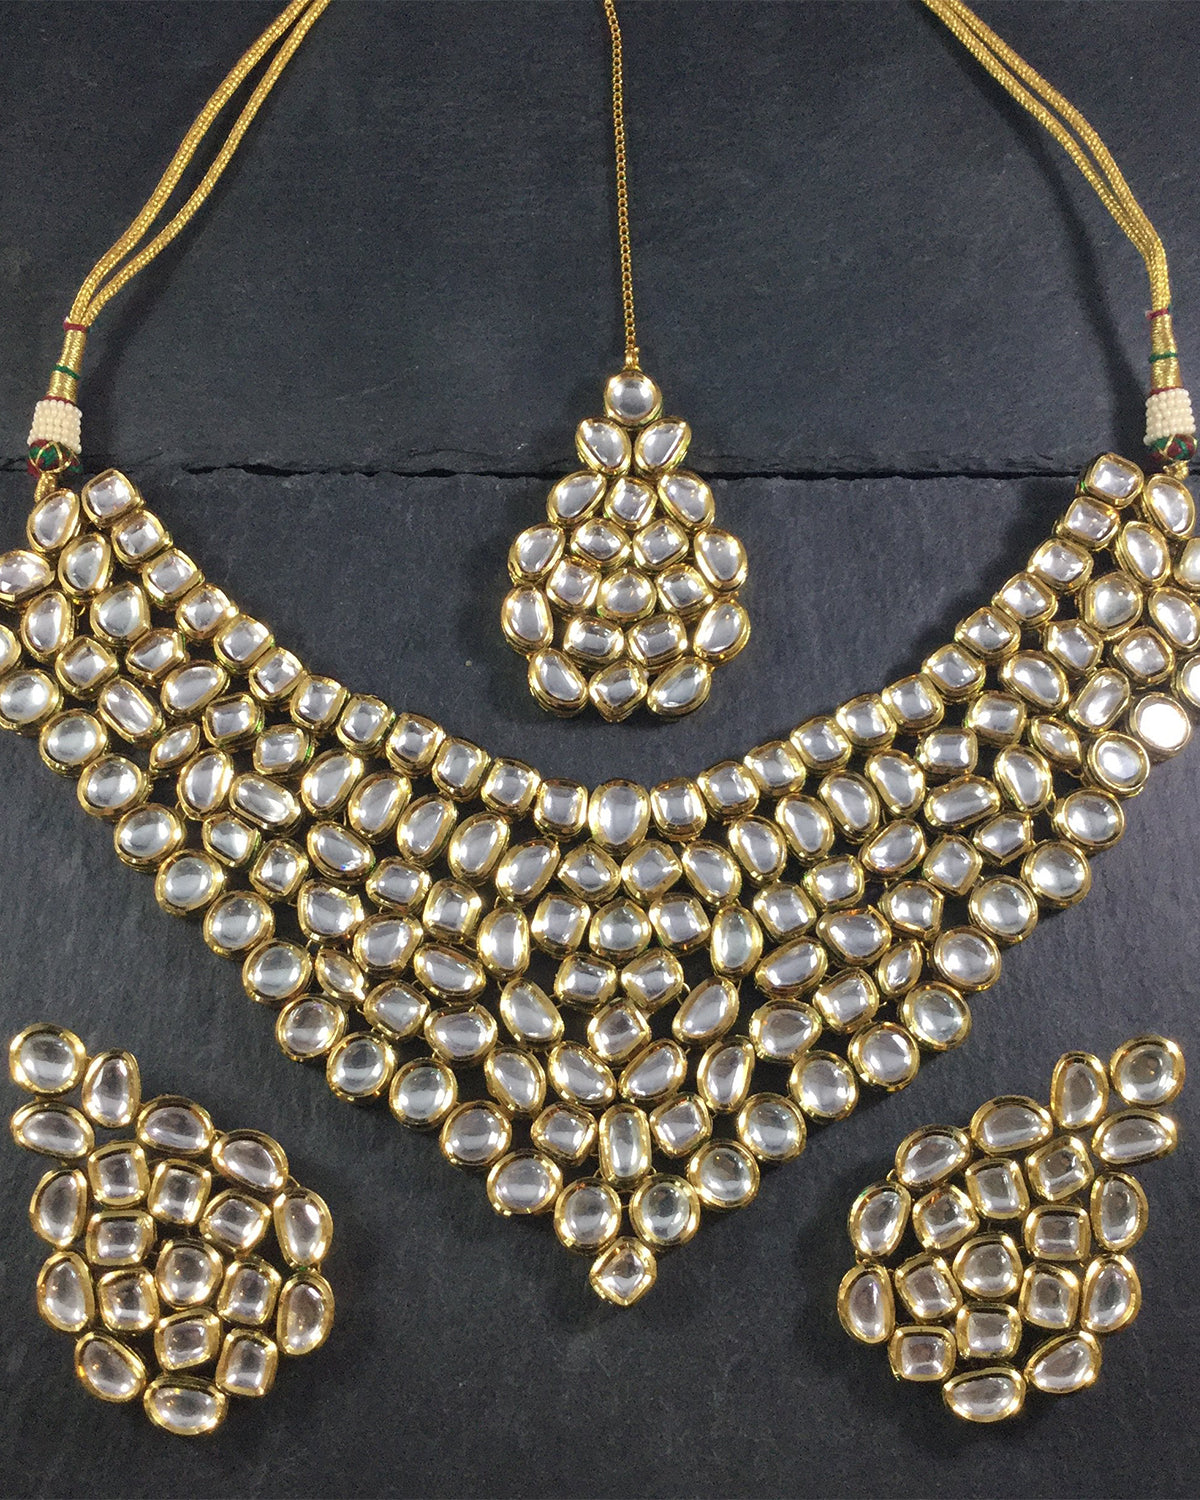 Clarity Kundan Jewelry Set